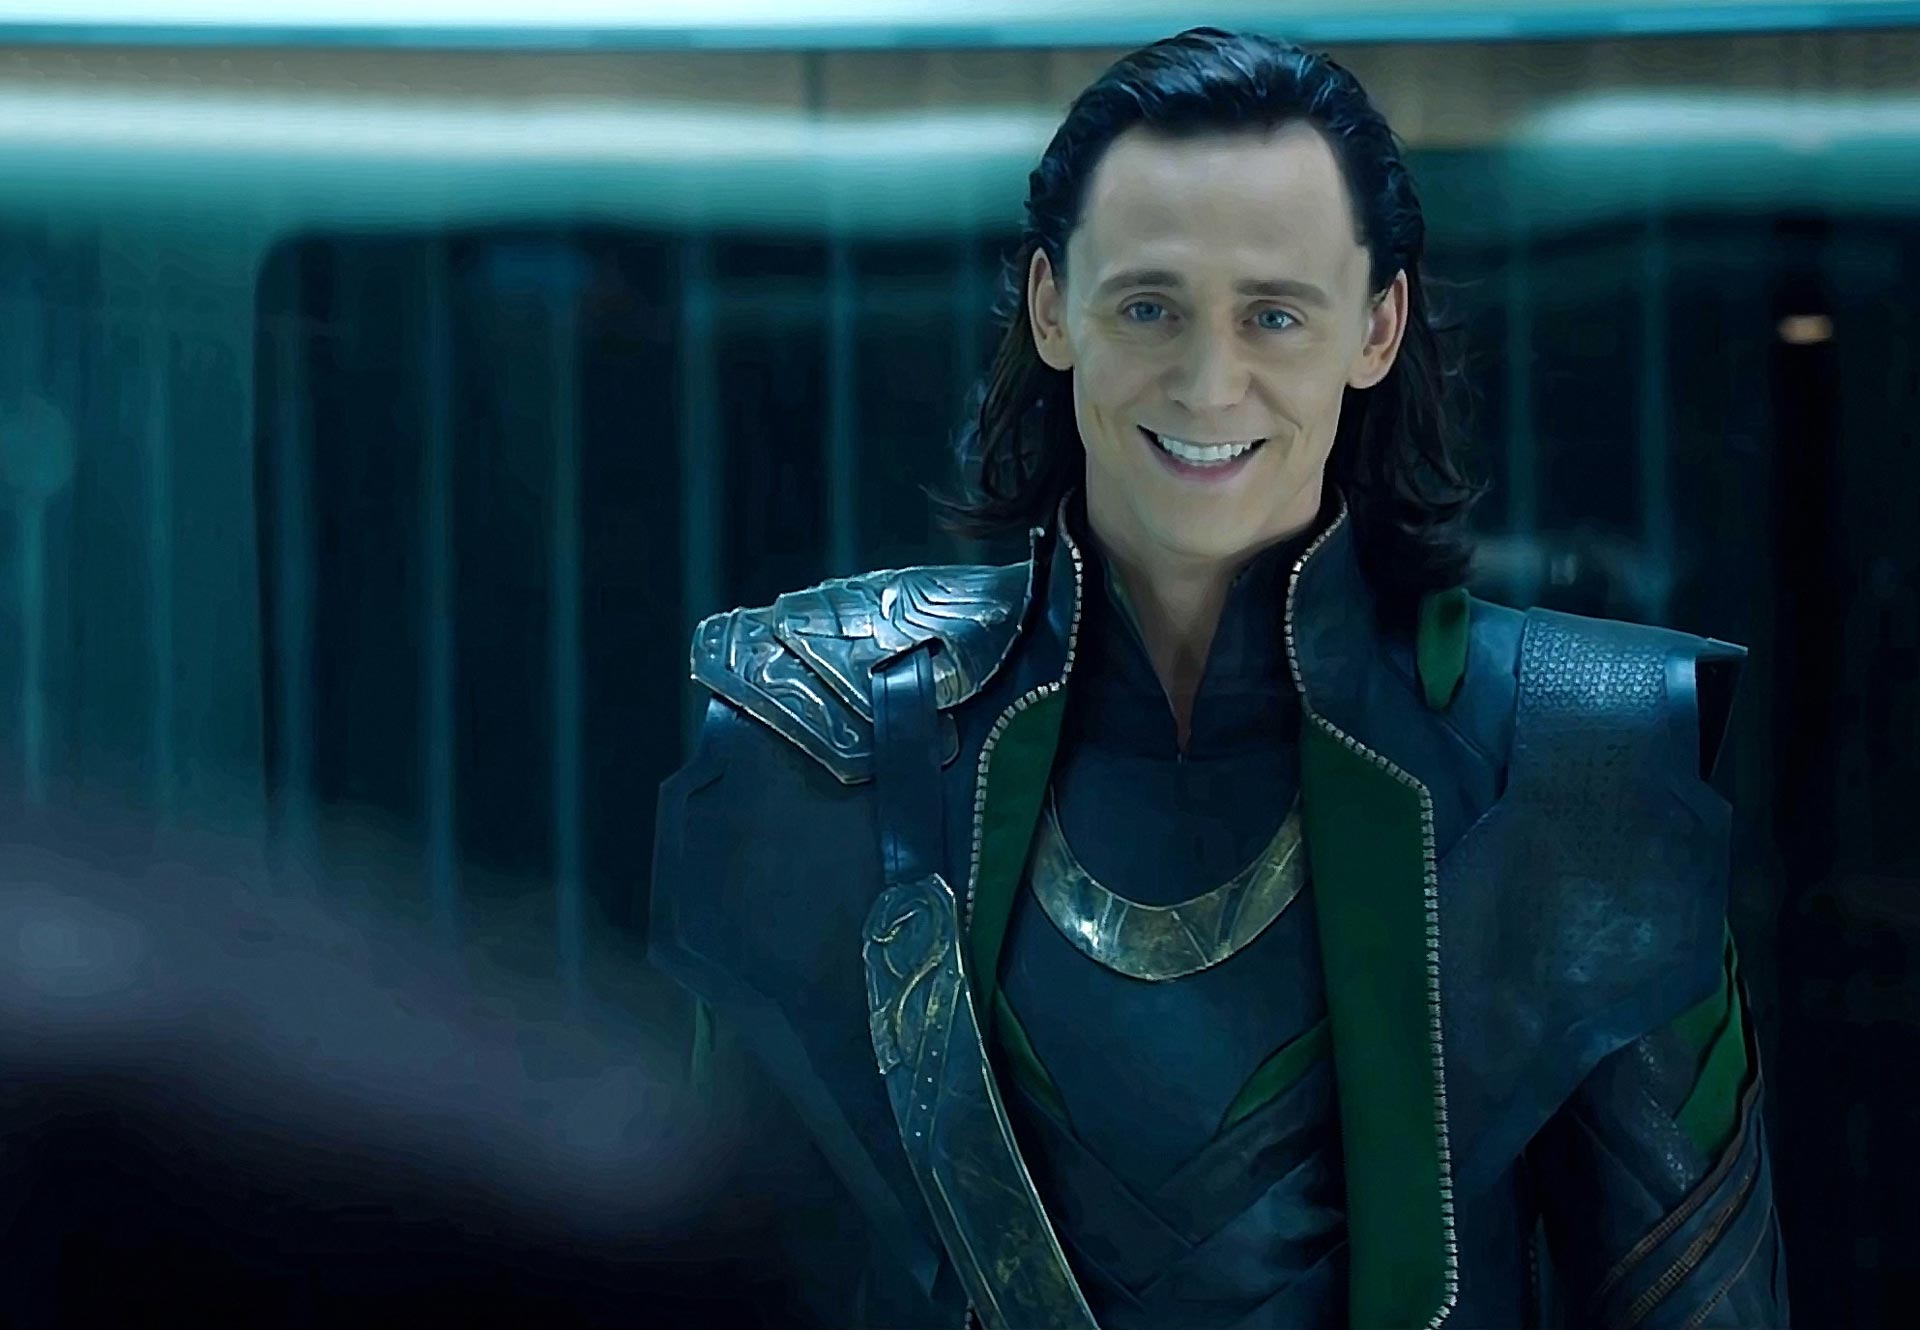 Loki smiling and looking sexy